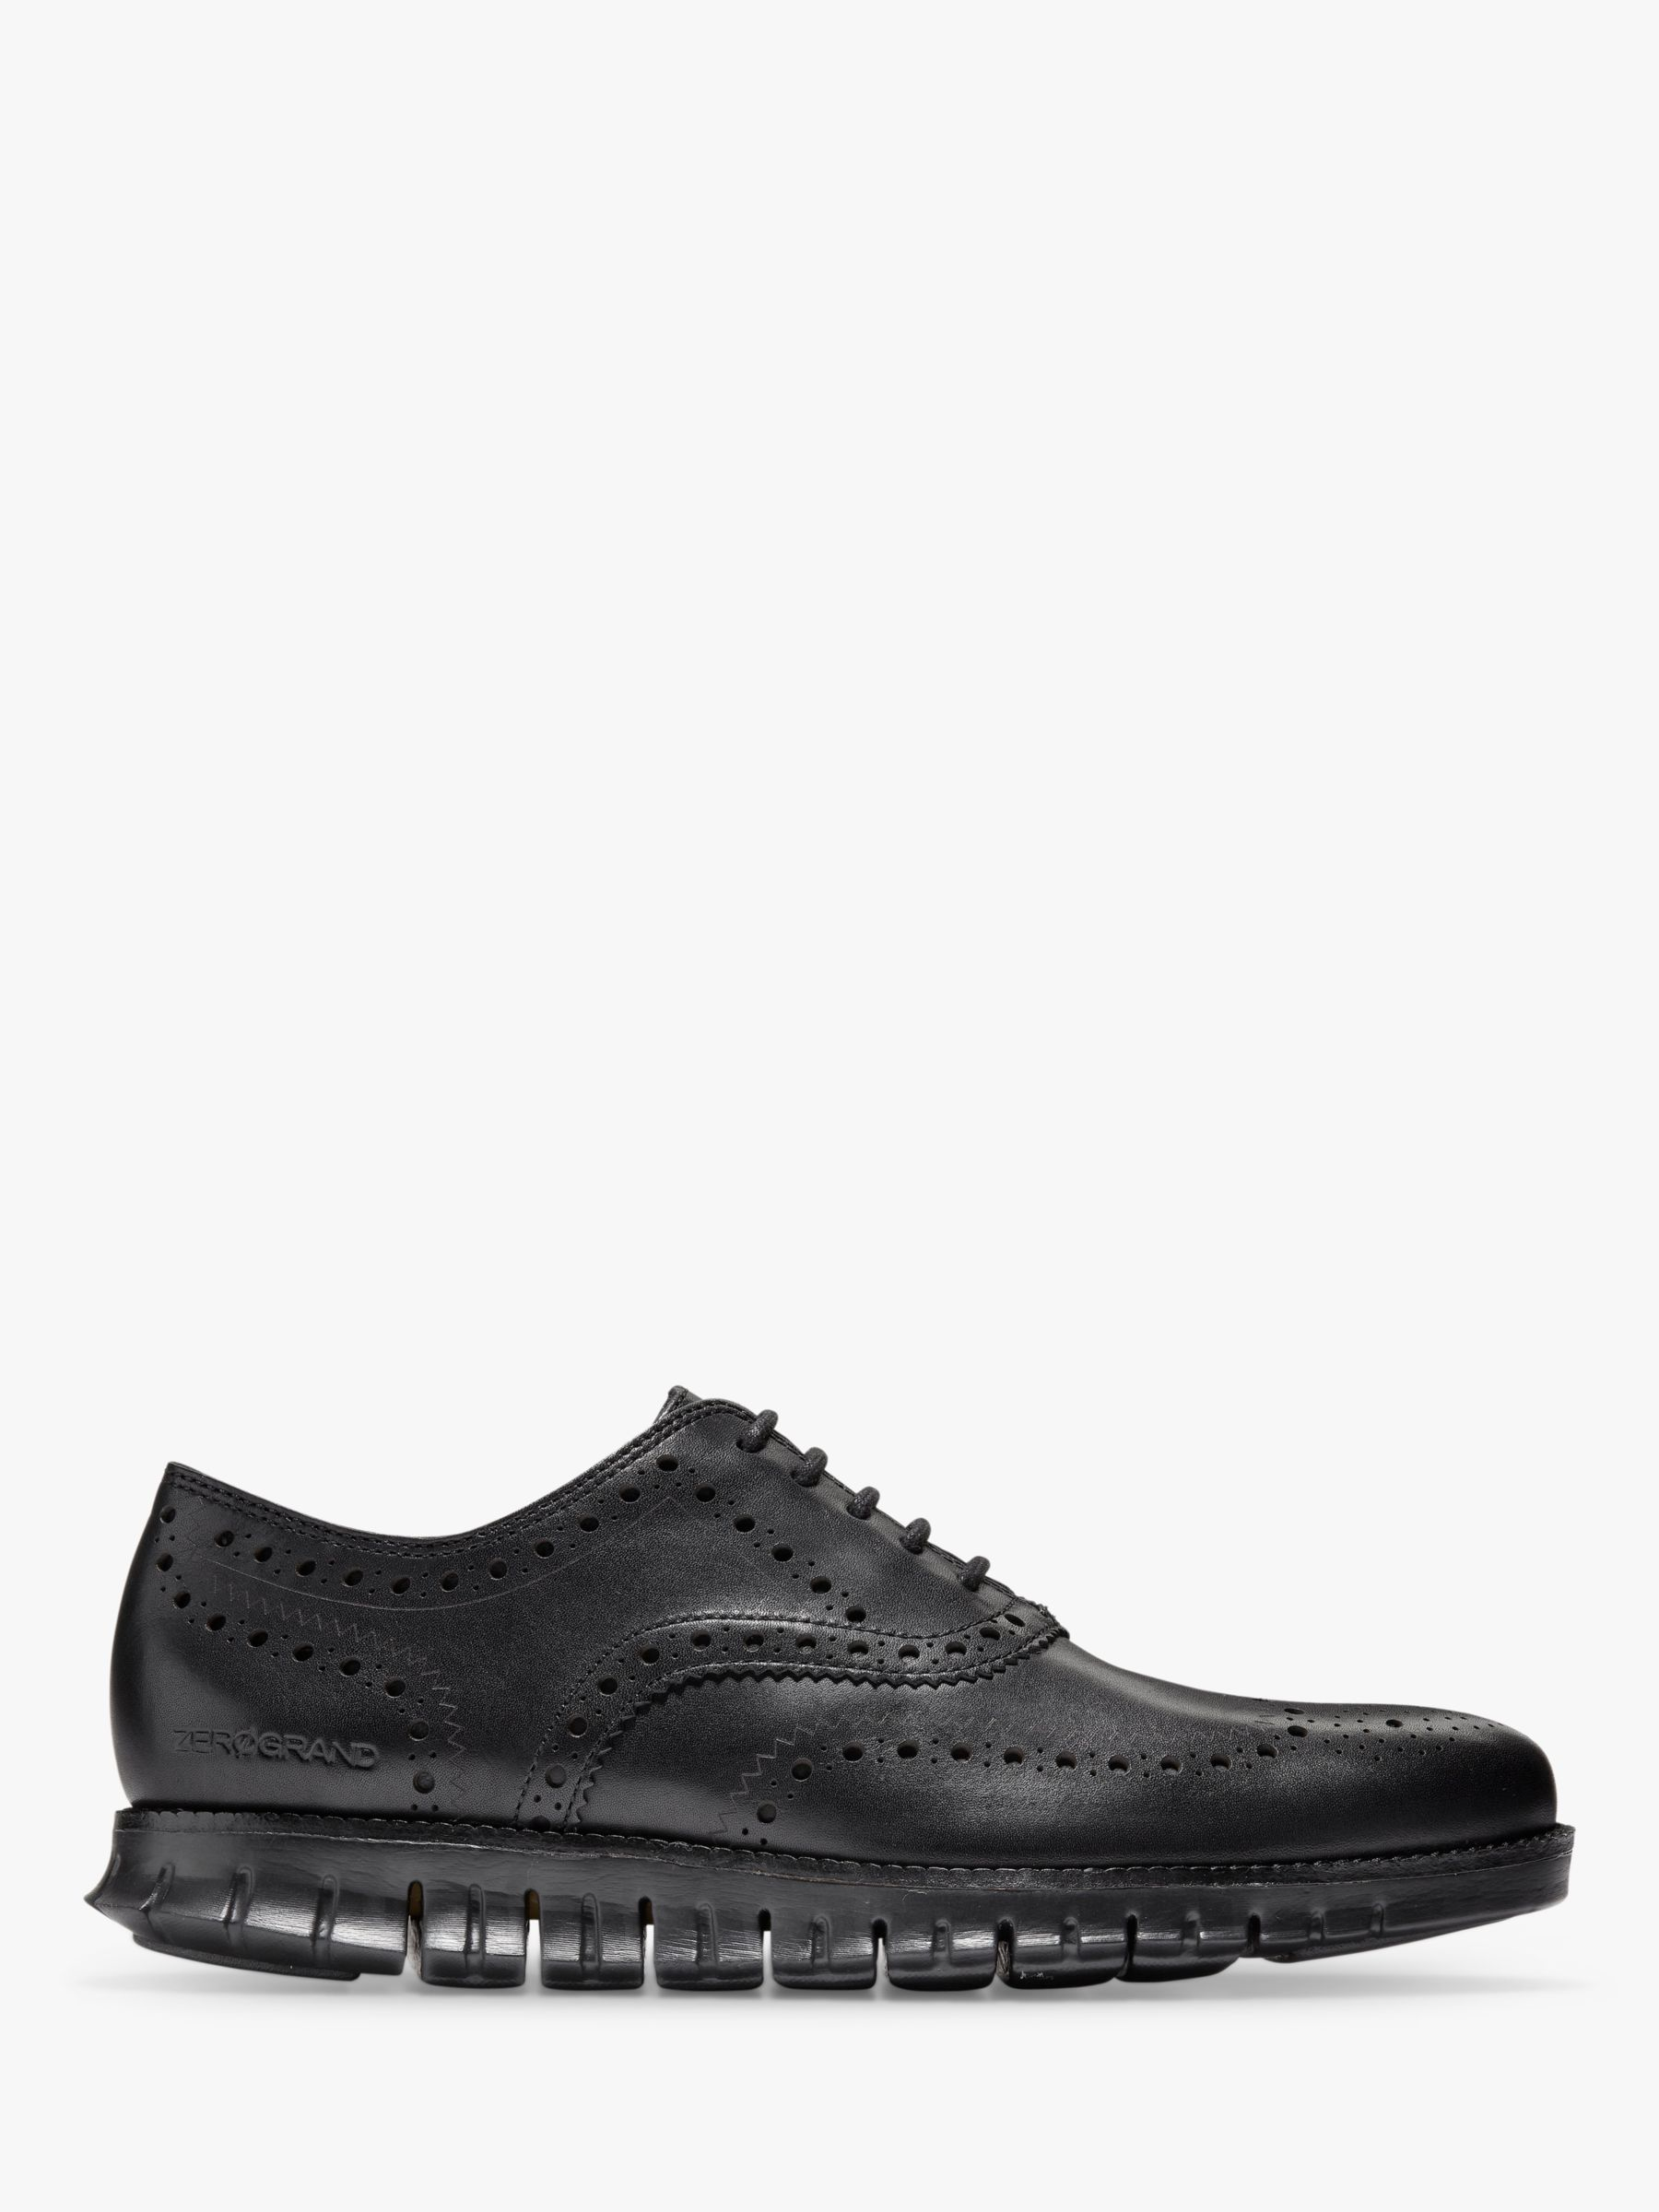 Cole Haan Cole Haan Zerogrand Wingtip Leather Oxford Shoes, Black Closed Holes